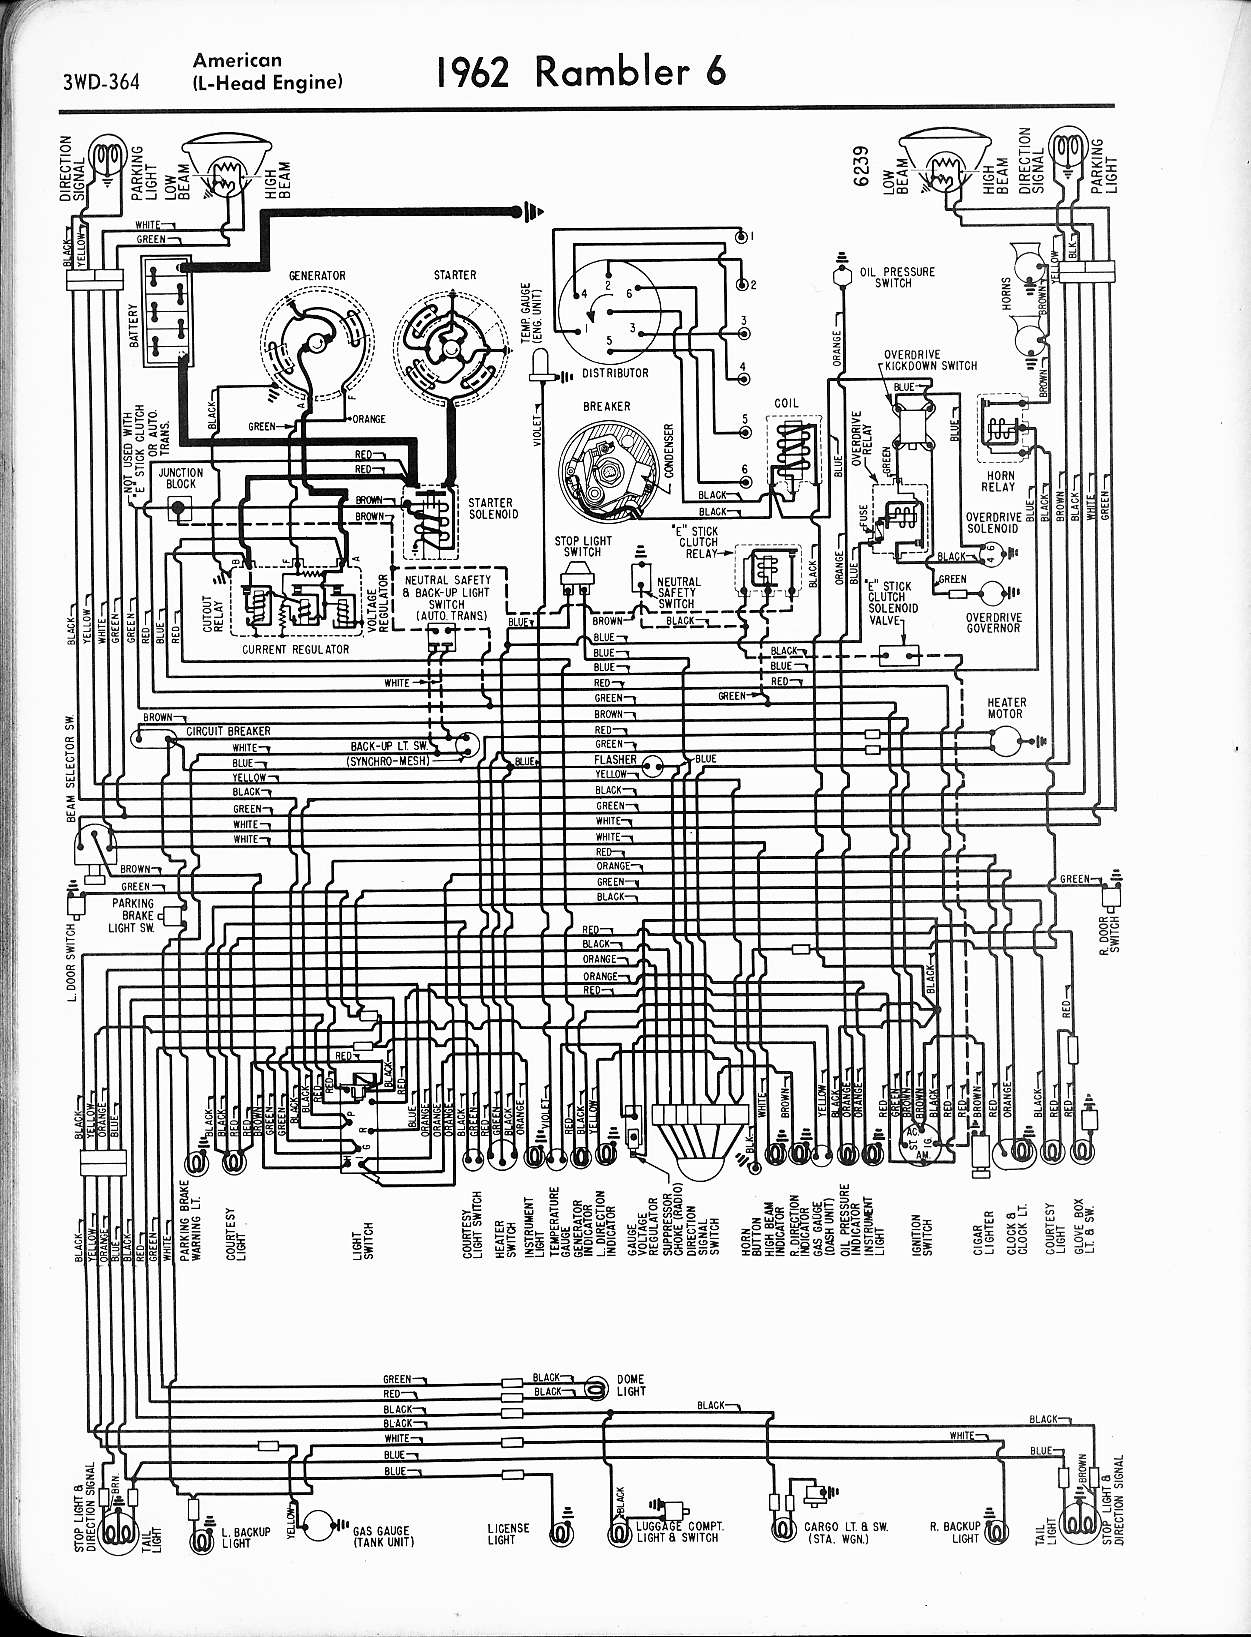 MWire5765 364 rambler wiring diagrams the old car manual project amc rebel wiring diagram at gsmportal.co